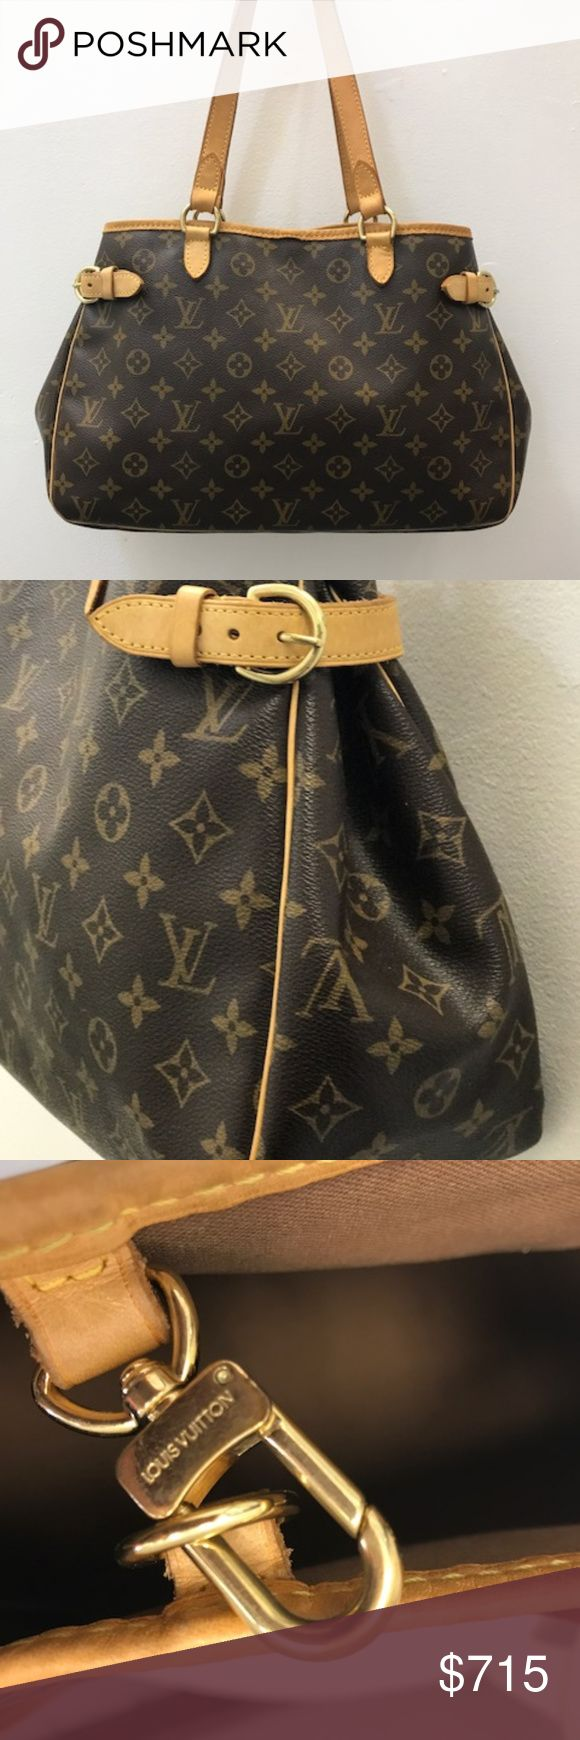 Louis Vuitton Monogram Batignolles Horizontal Tote Louis Vuitton Monogram Batignolles Horizontal Tote This exquisite monogram tote made in the USA features gold fittings and accents, tan leather trim that has a nice patina, side buckles for expansion, double leather handles, and a hook latch closure that opens to a traditional brown fabric interior lining that includes 1 open and 1 zip pocket. This bag retailed for $1150 Dimensions: 14.5 x 10 x 5 Louis Vuitton Bags Totes